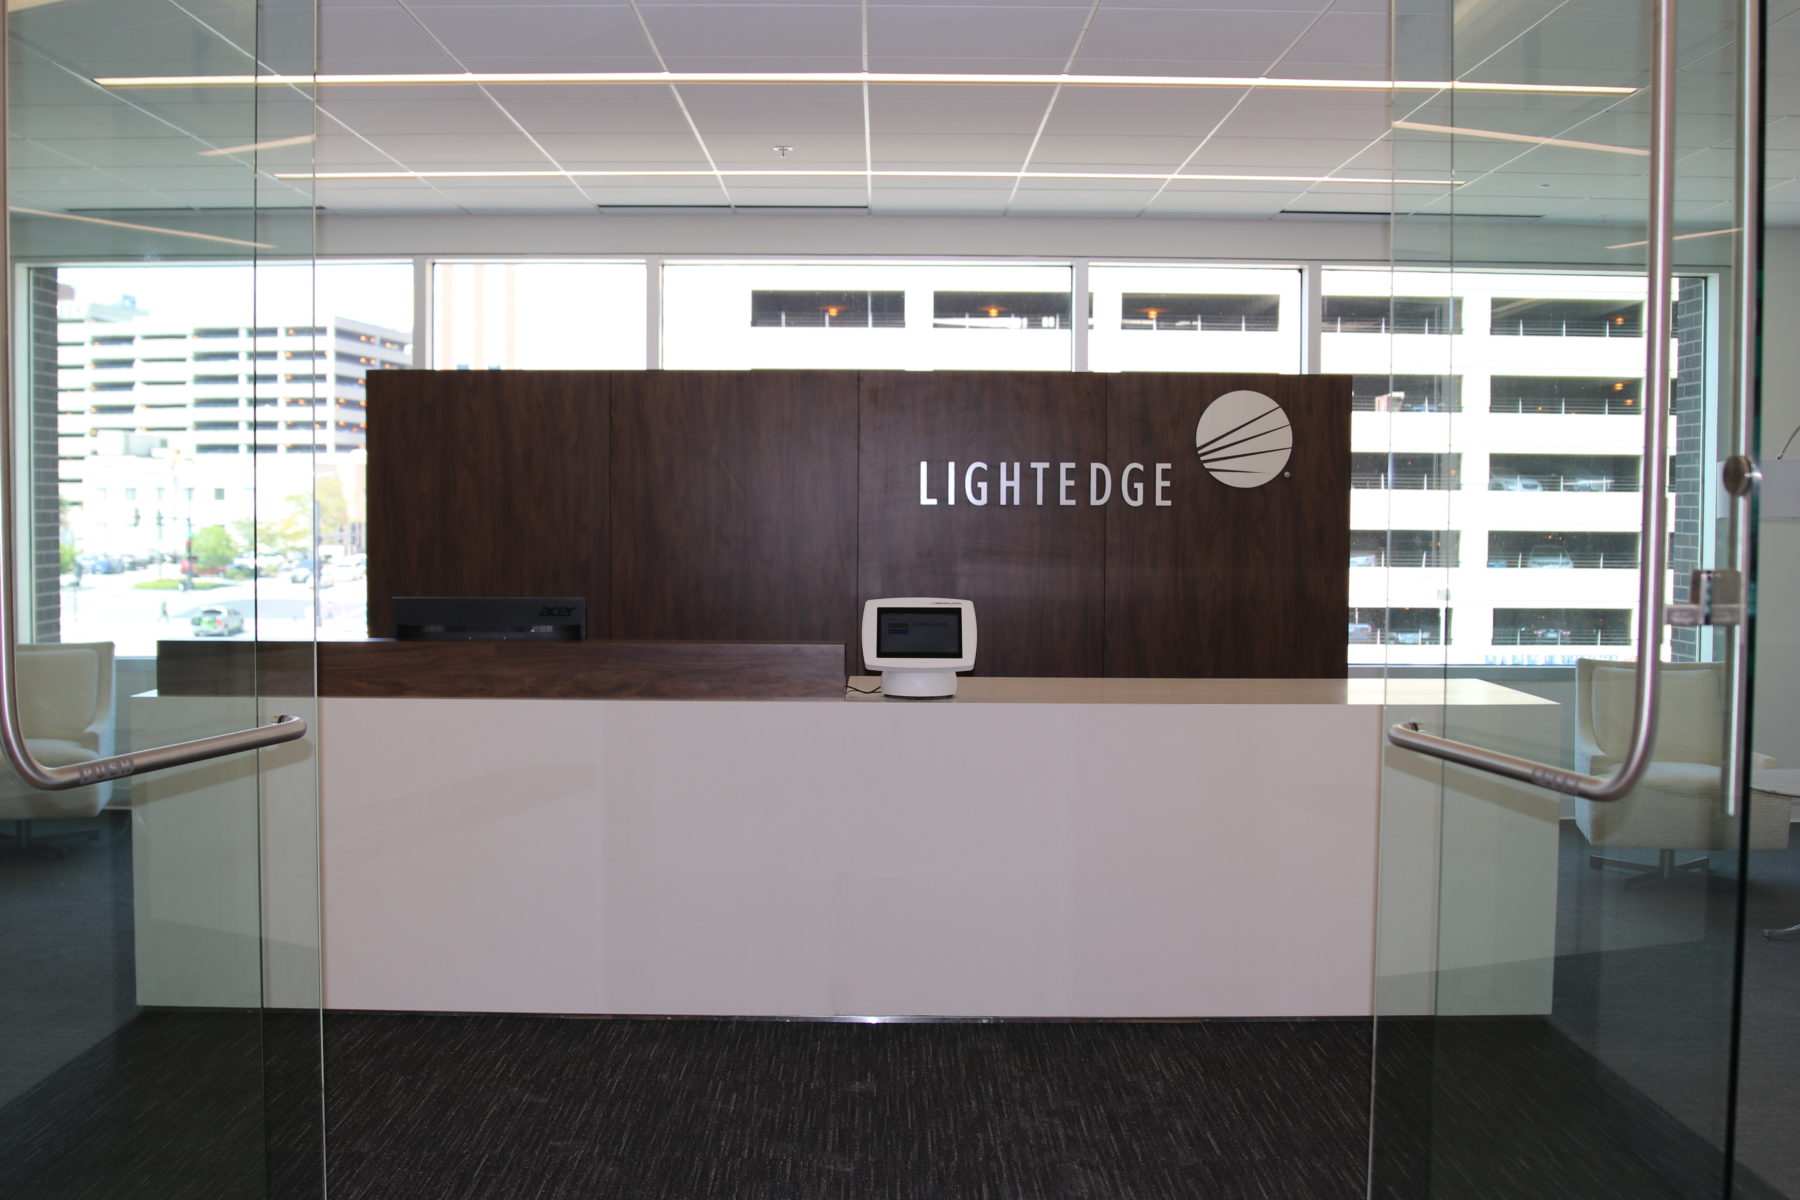 LightEdge Tenant Improvements